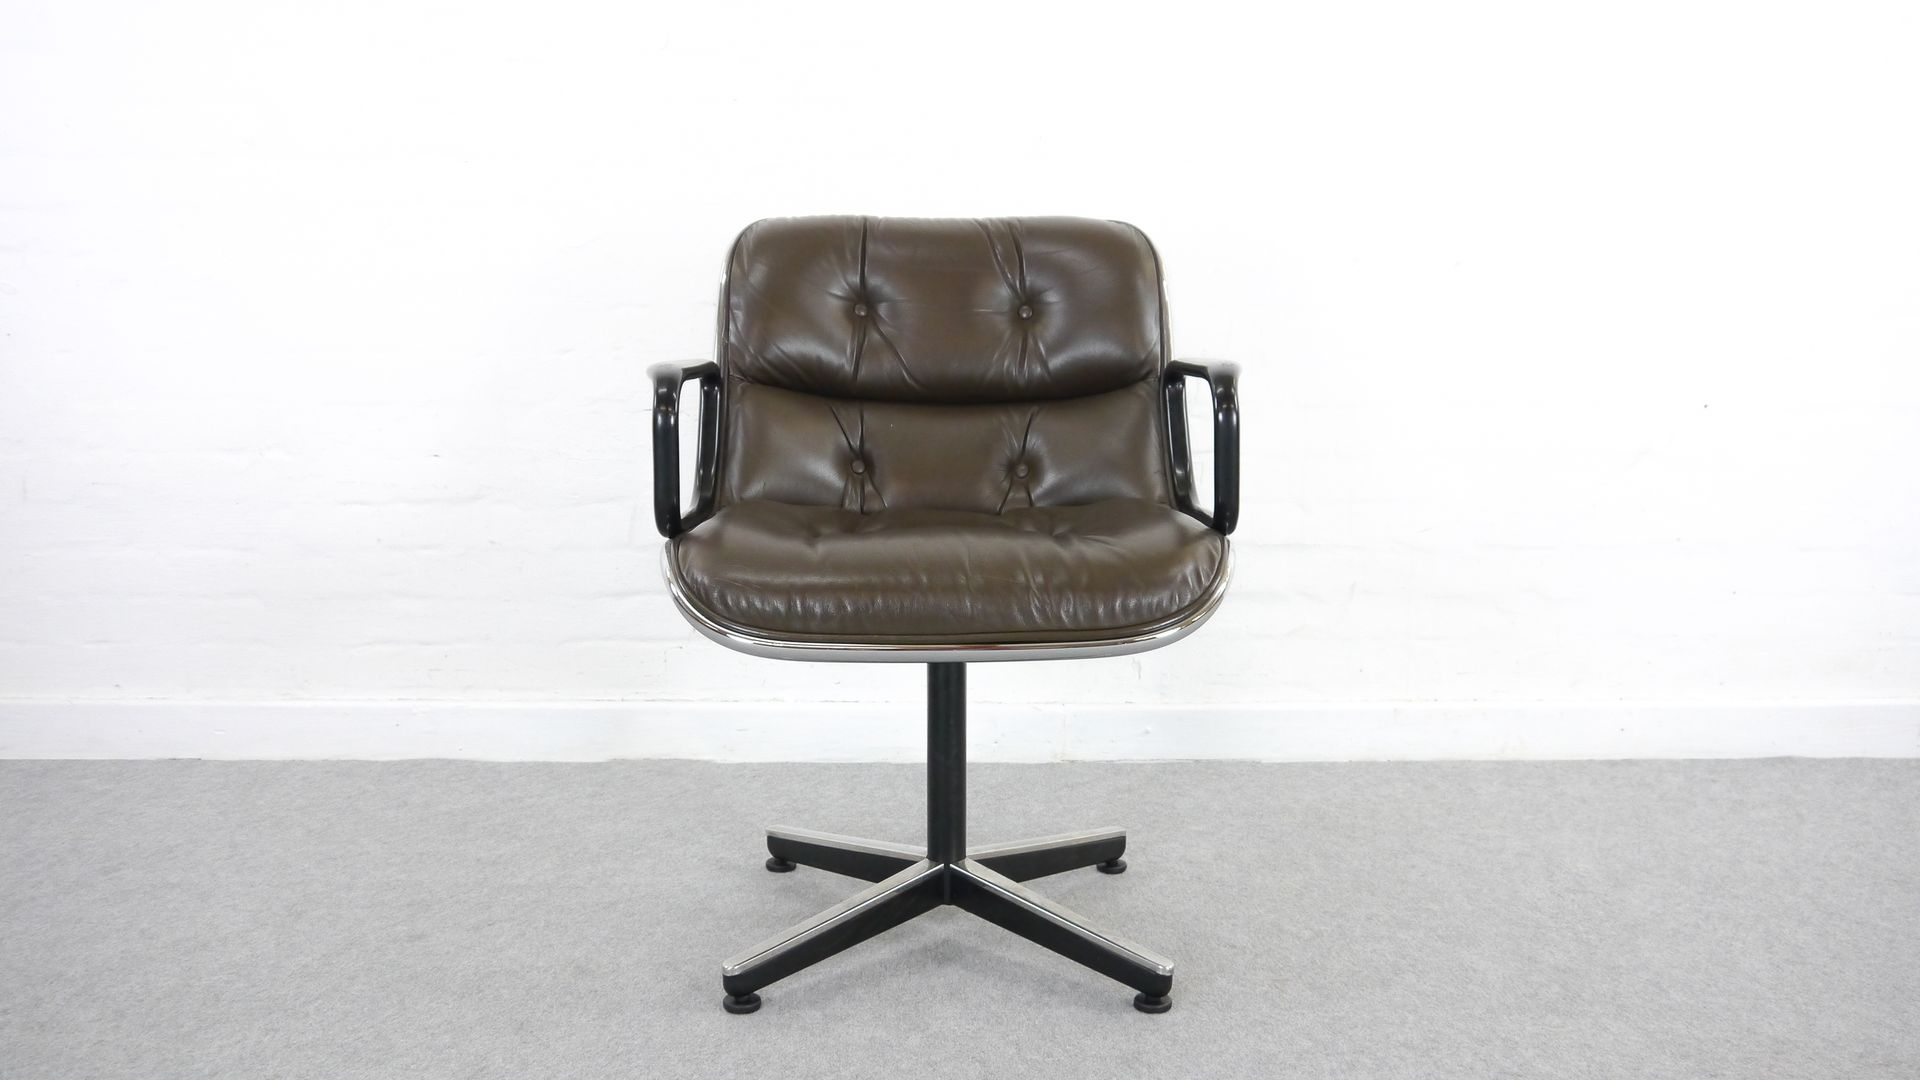 Leather Executive Desk Chair By Charles Pollock For Knoll International 1963